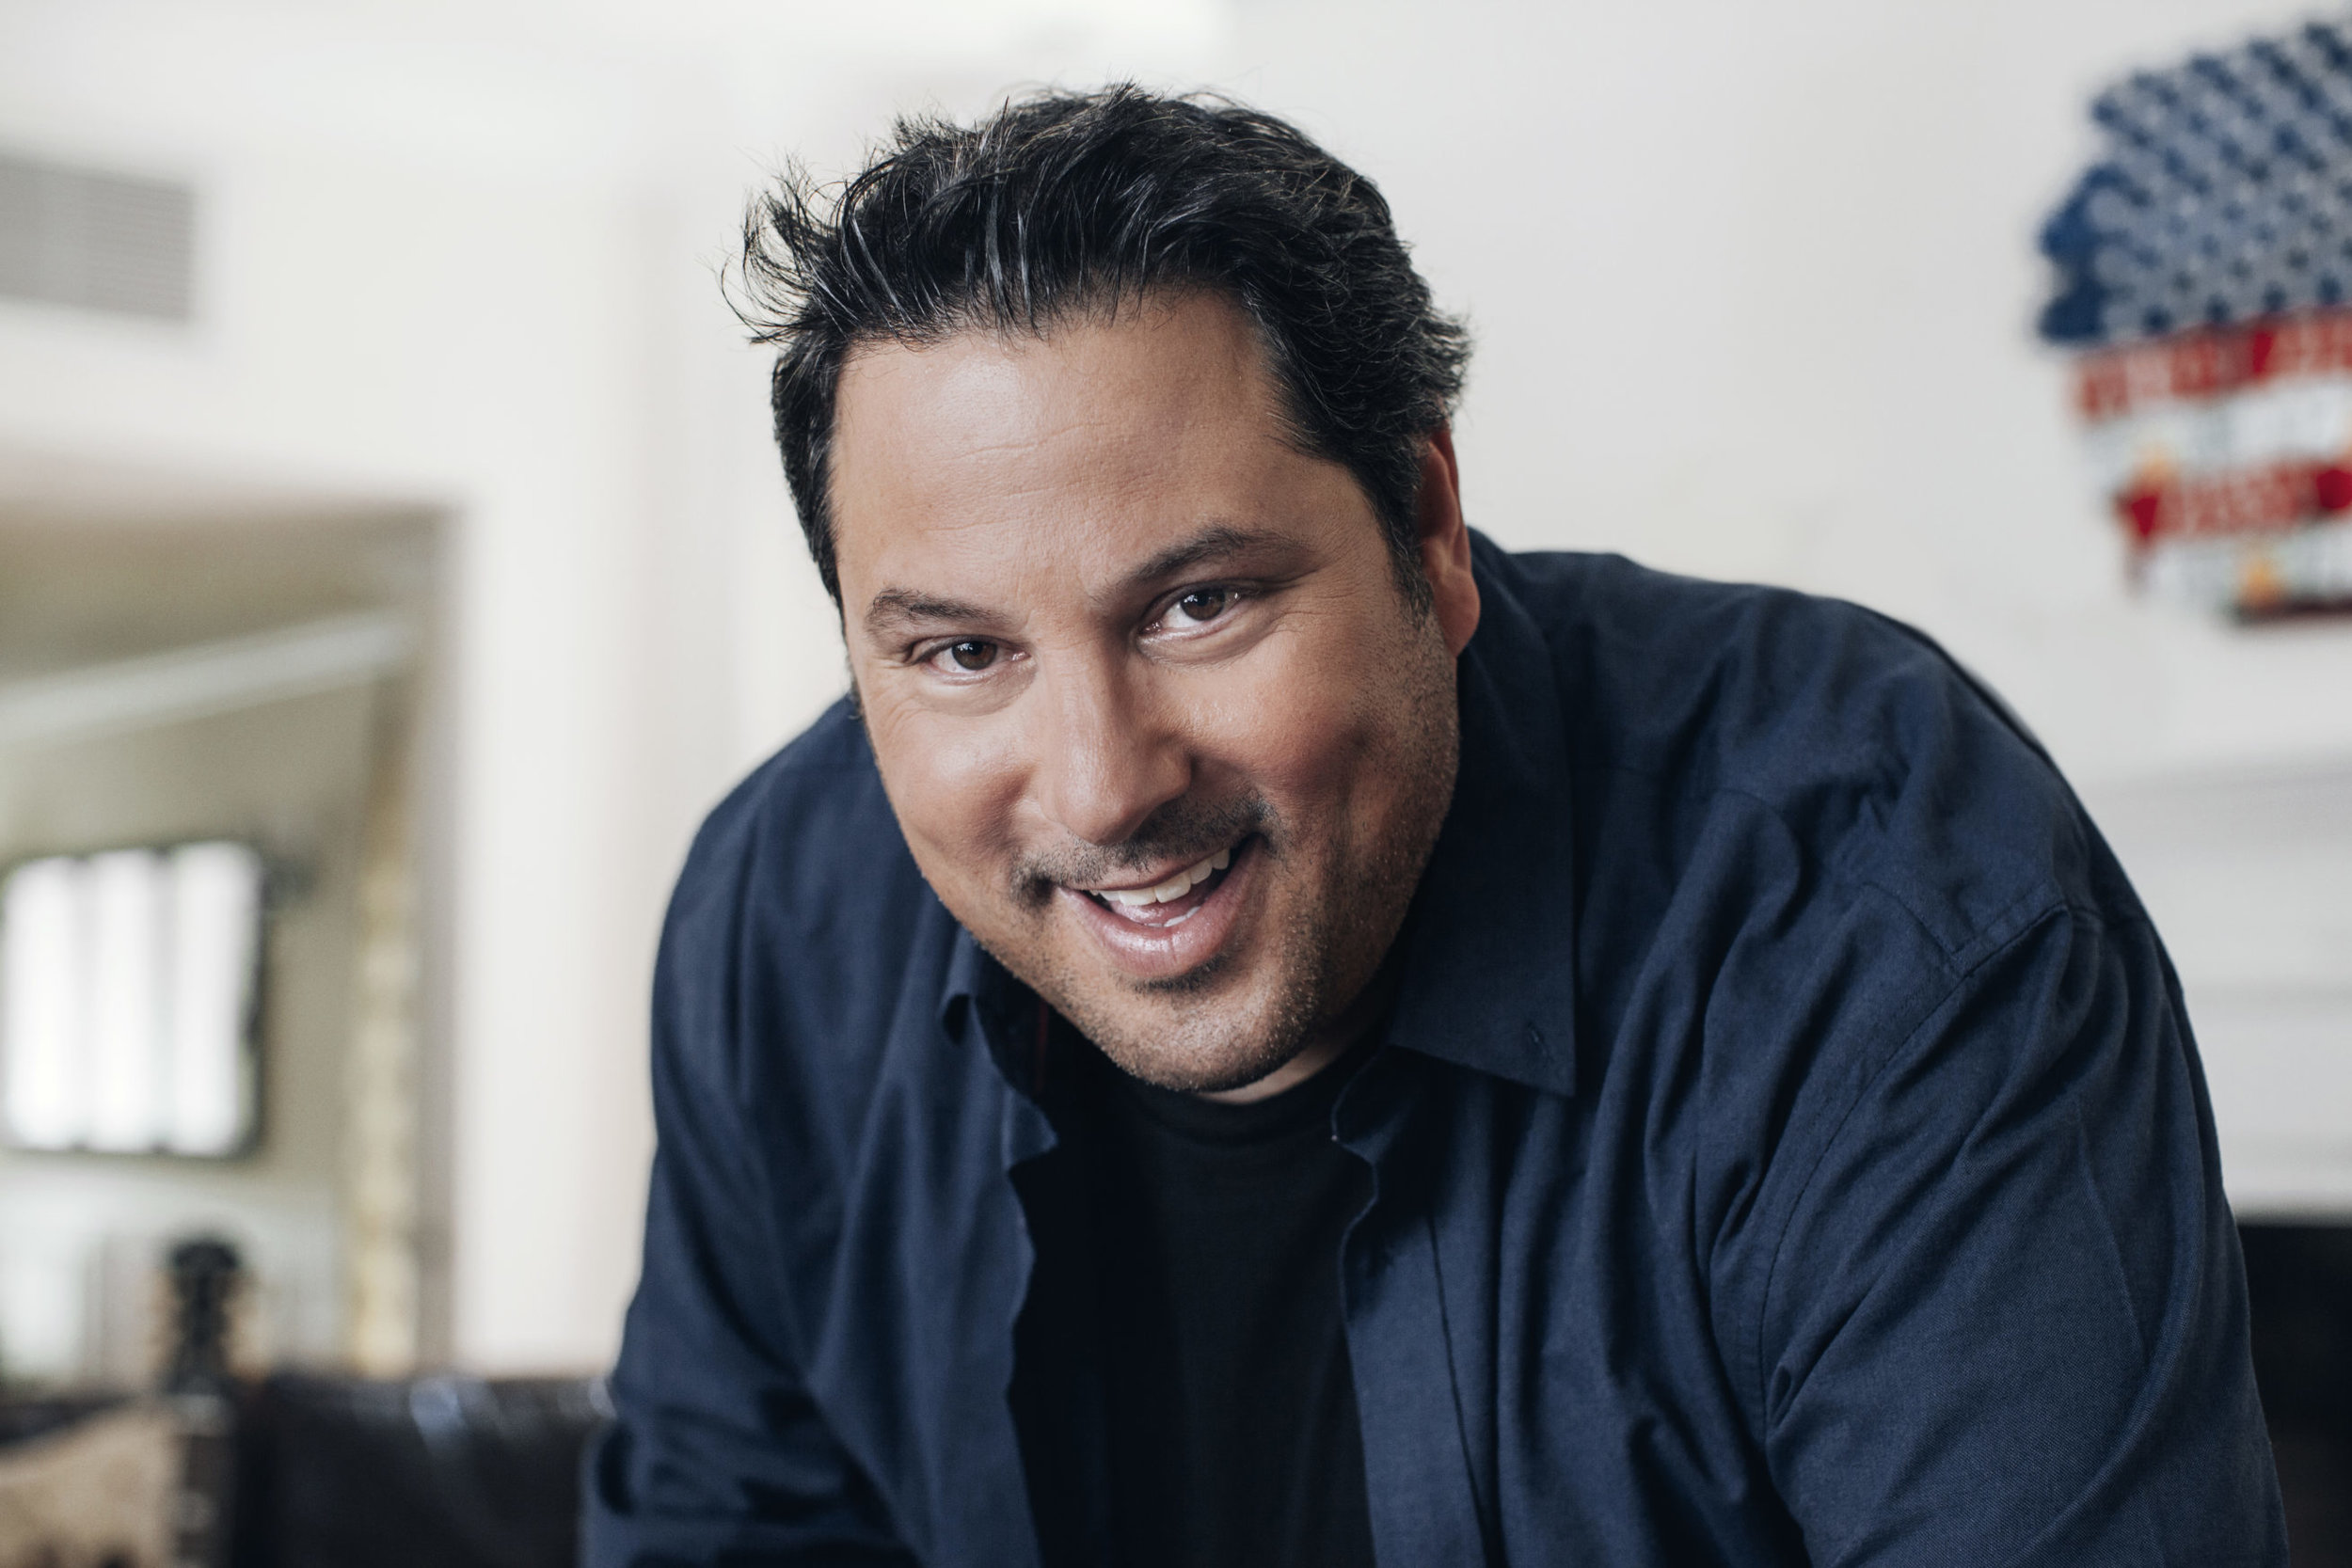 I interviewed Greg Grunberg for the    Five Four    blog.    Greg has been a major fan of the Five Four label for several years and spoke about his appreciation about the fashion industry.